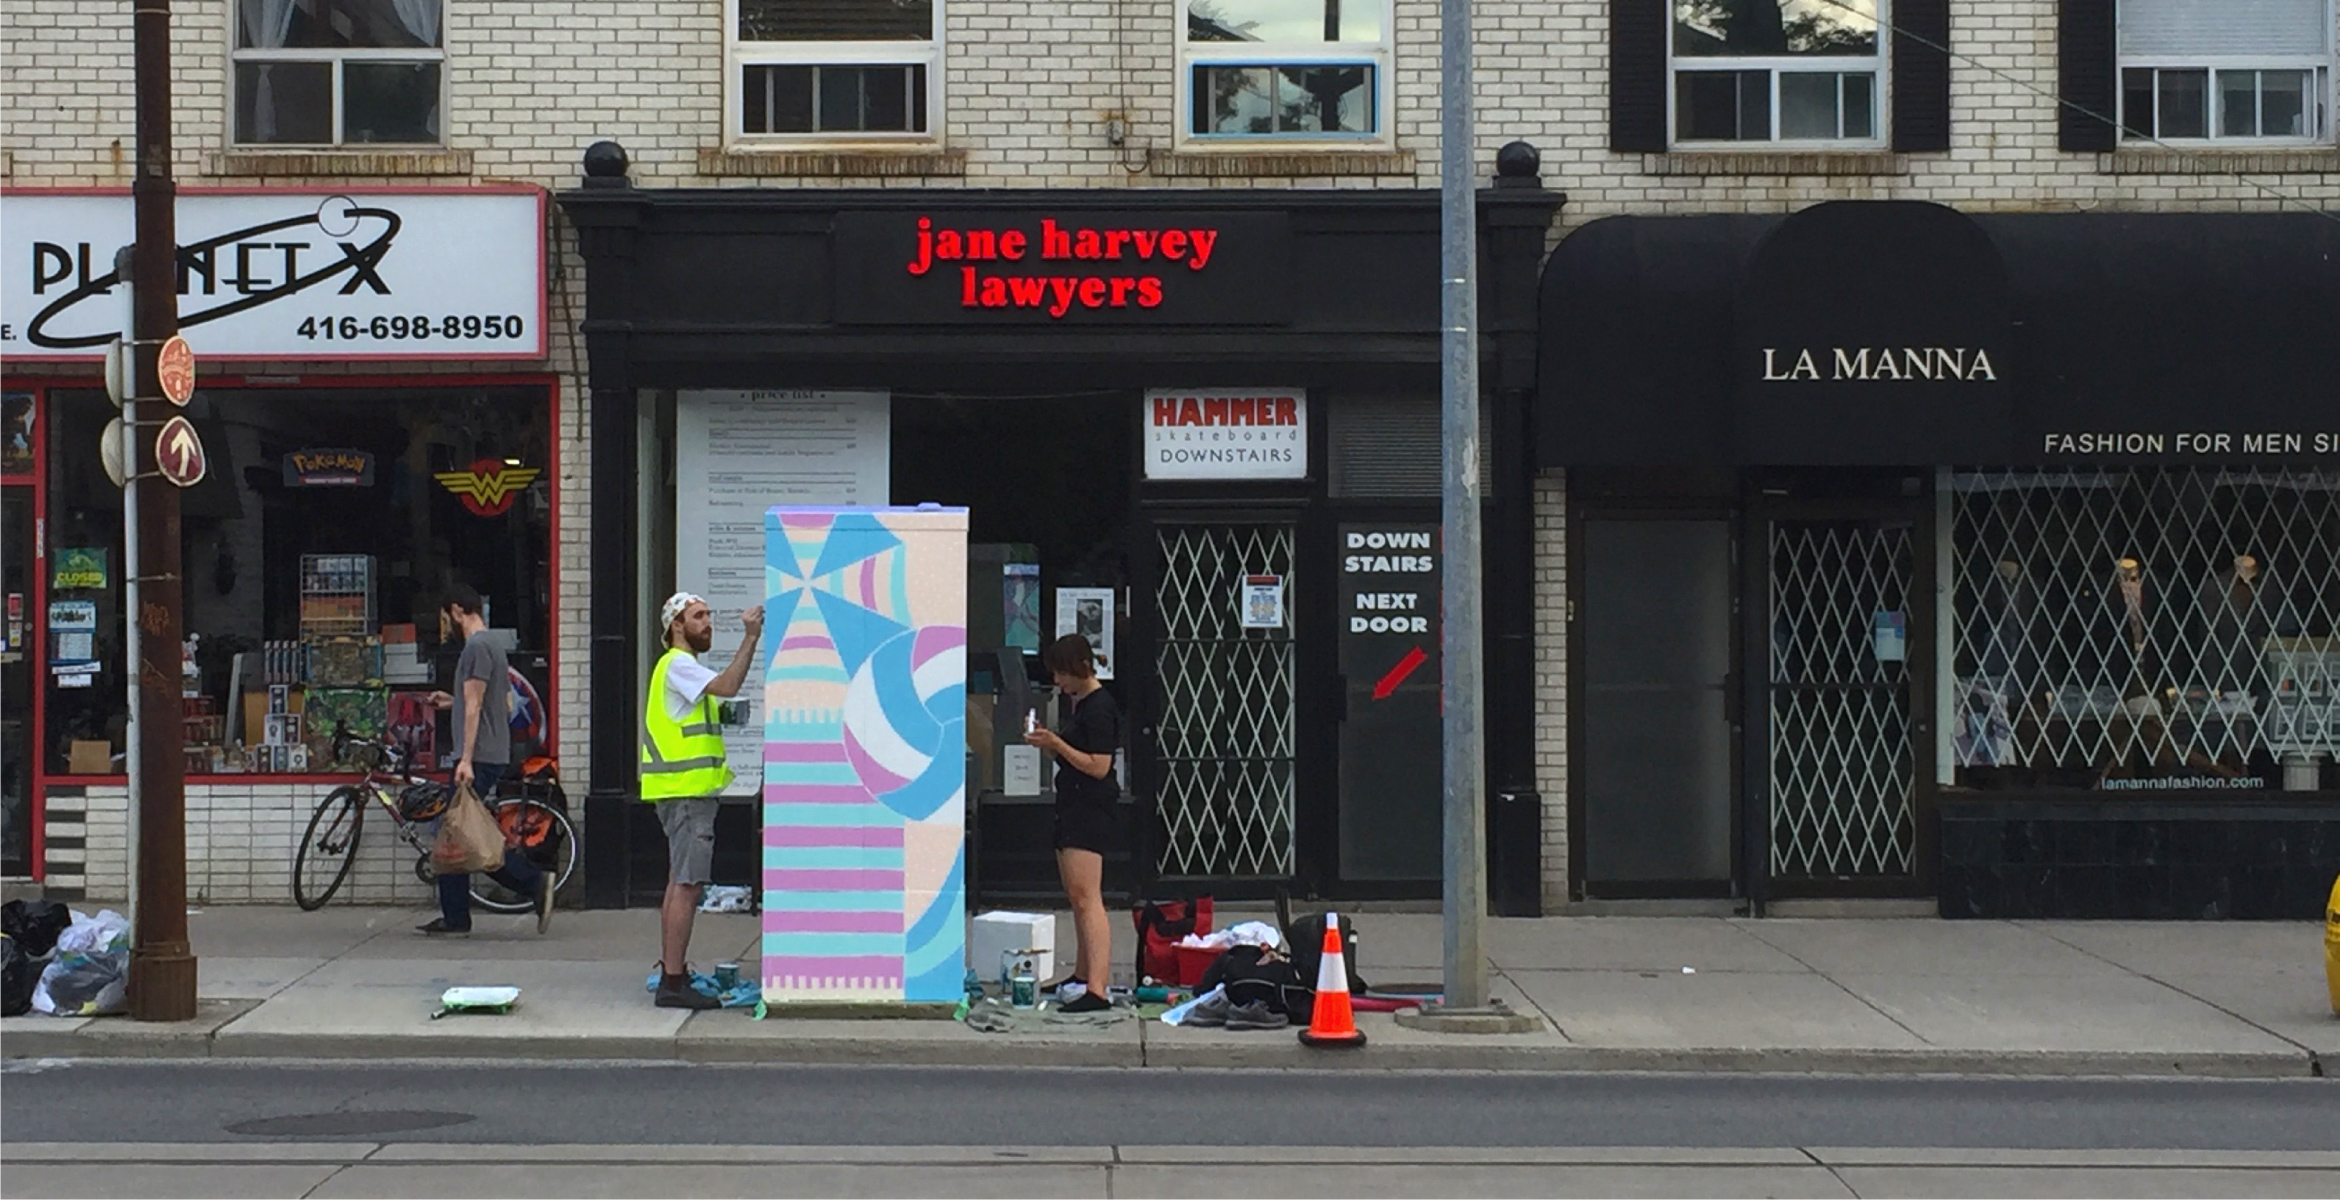 View from across the street of two studio members painting the traffic signal box.